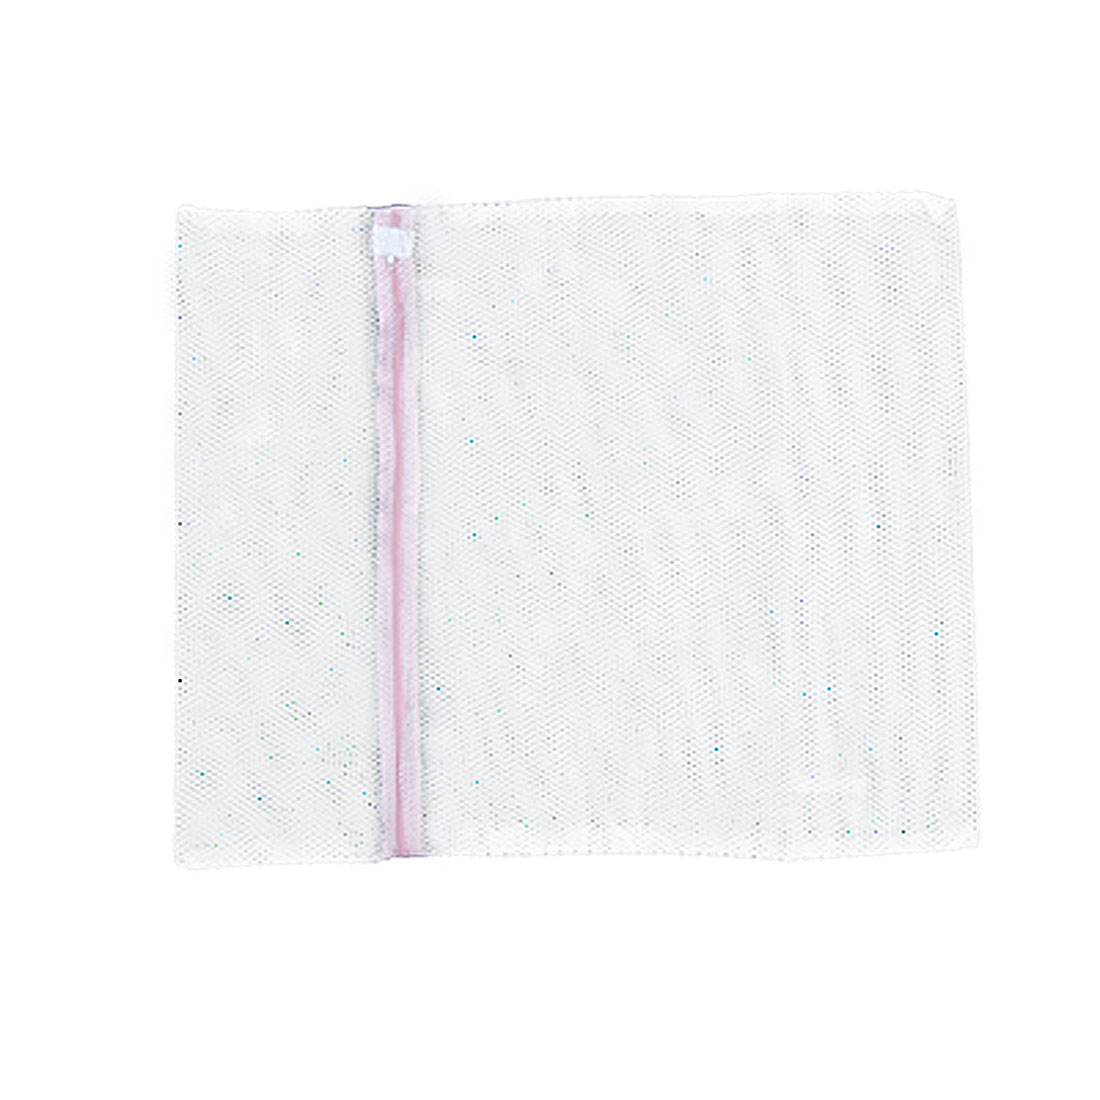 Laundry White Mesh Pink Zipper Washing Machine Bag